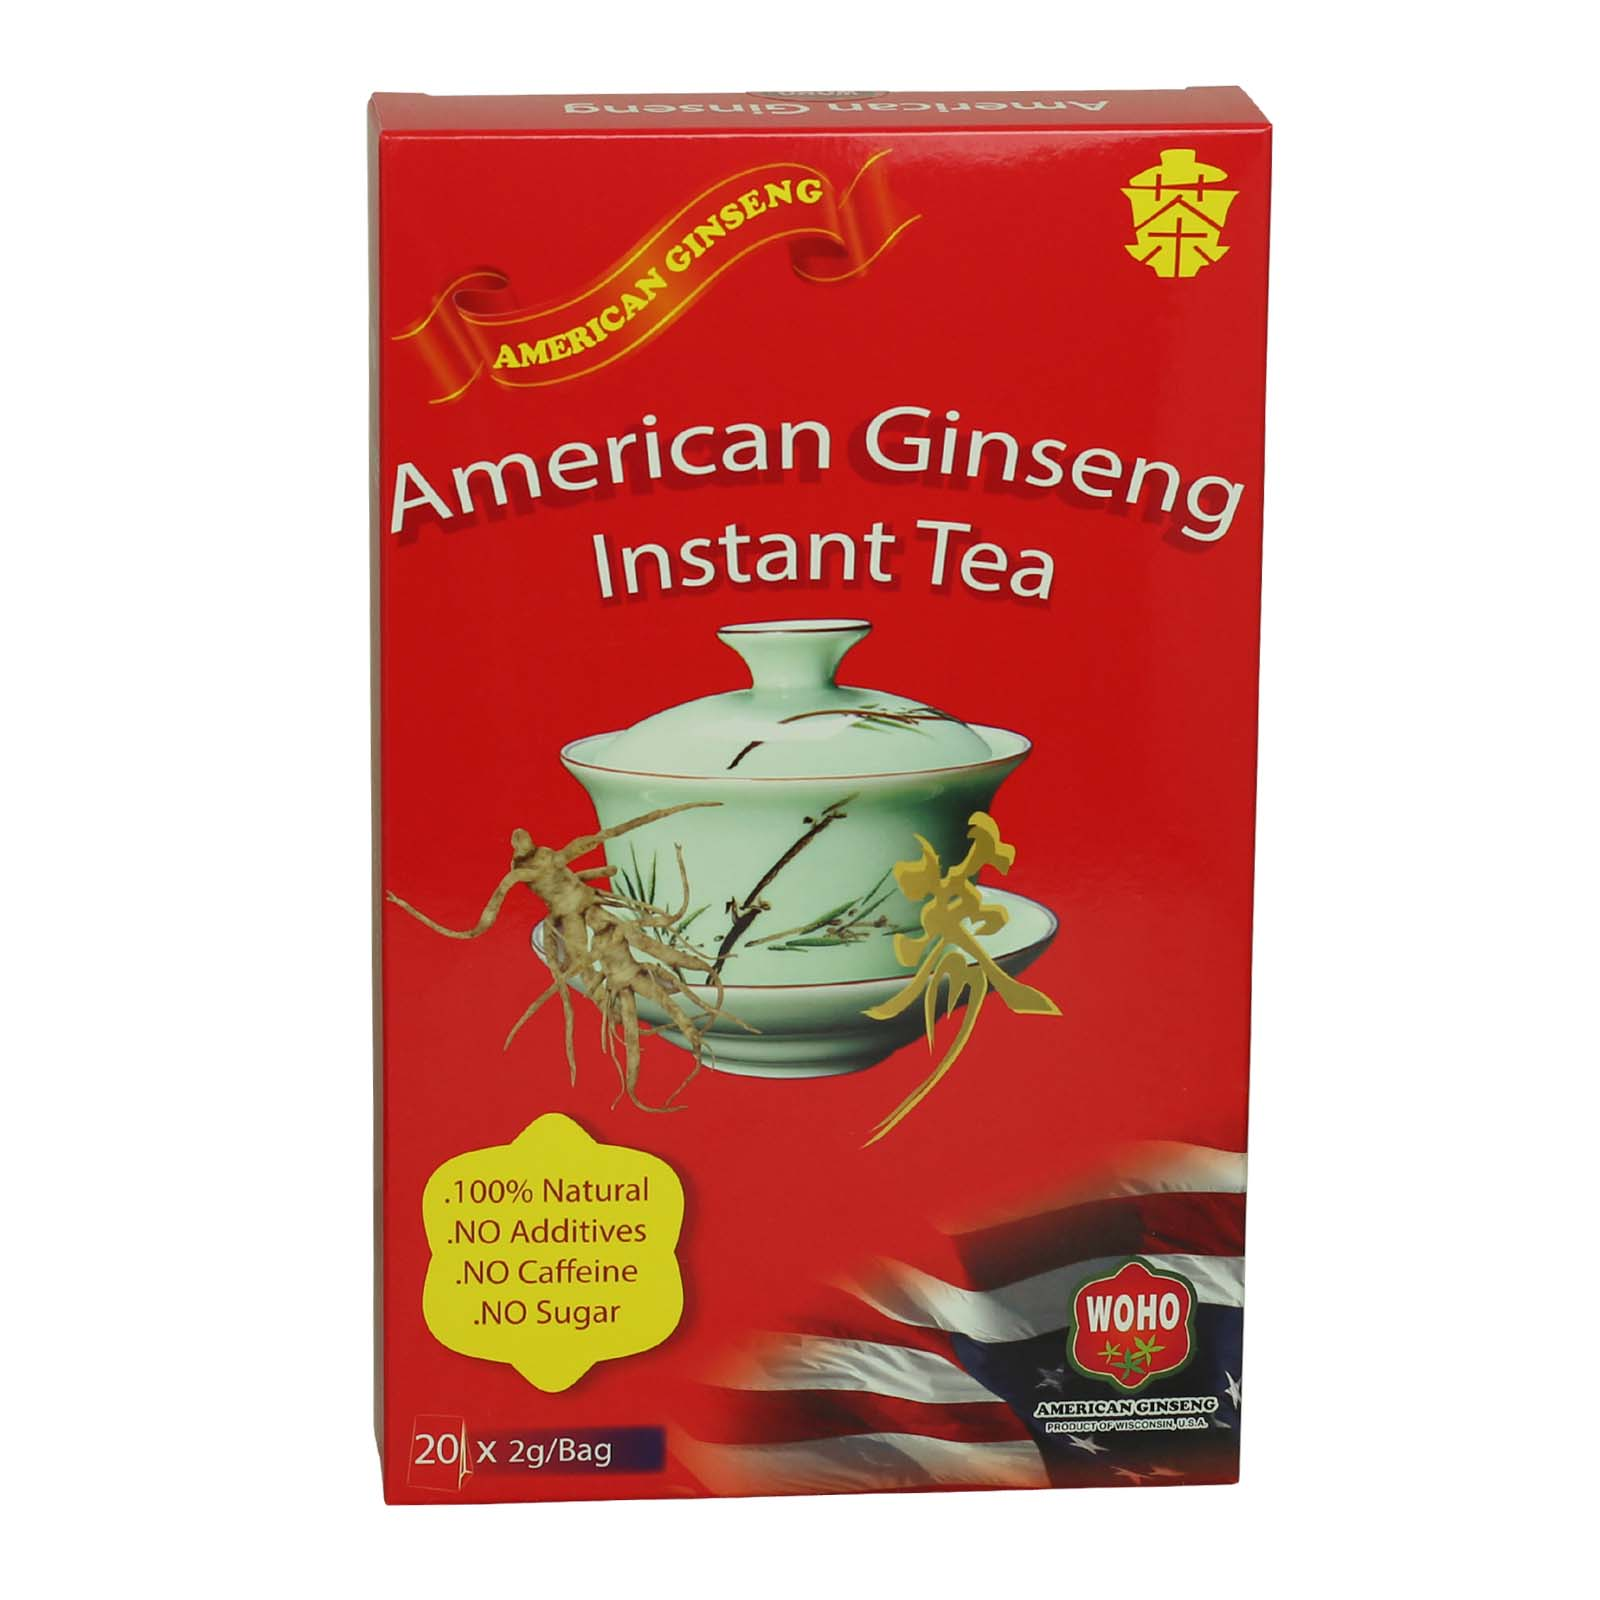 WOHO®  American Ginseng Instant Tea 20X2g Bags